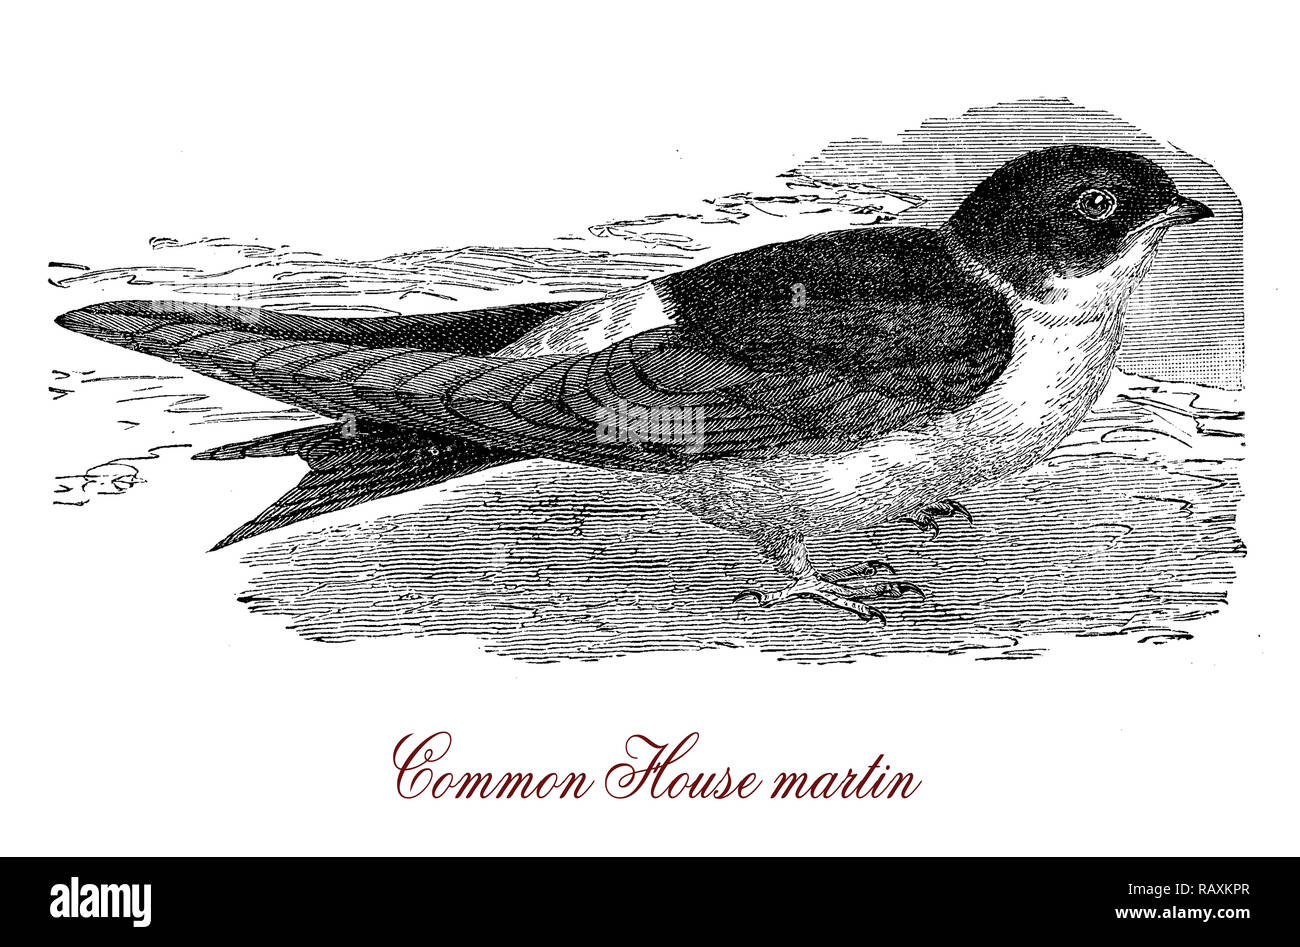 Vintage engraving of  common house martin,  migratory passerine bird of the swallow family with blue head. It feeds on insects caught in flight. - Stock Image